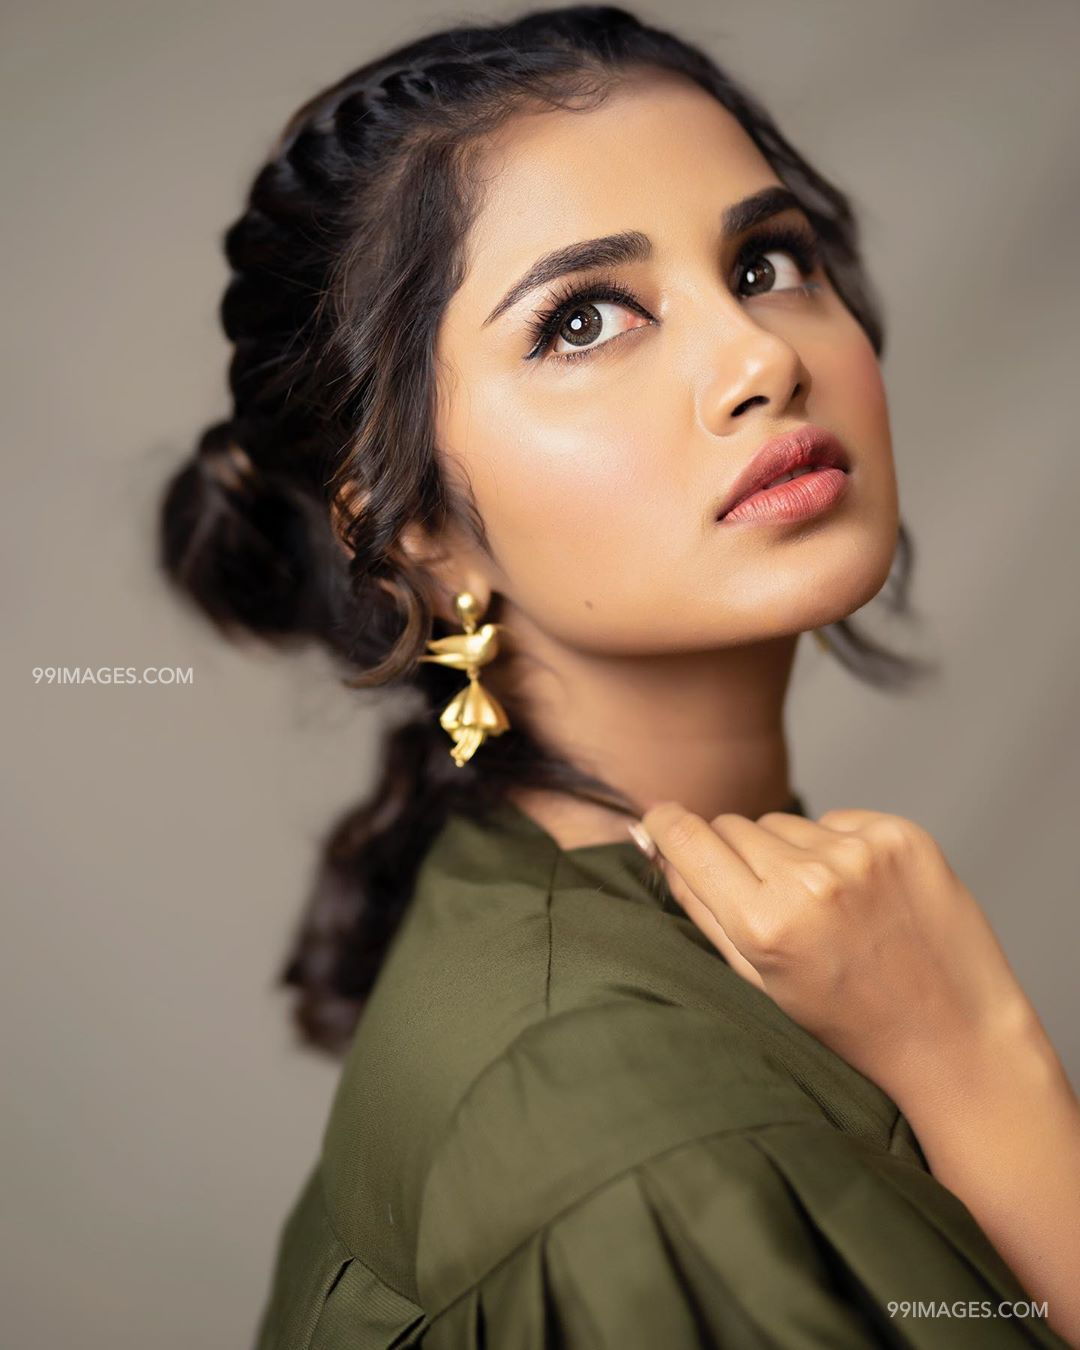 Anupama Parameswaran Beautiful HD Photoshoot Stills & Mobile Wallpapers HD (1080p) (35535) - Anupama Parameswaran